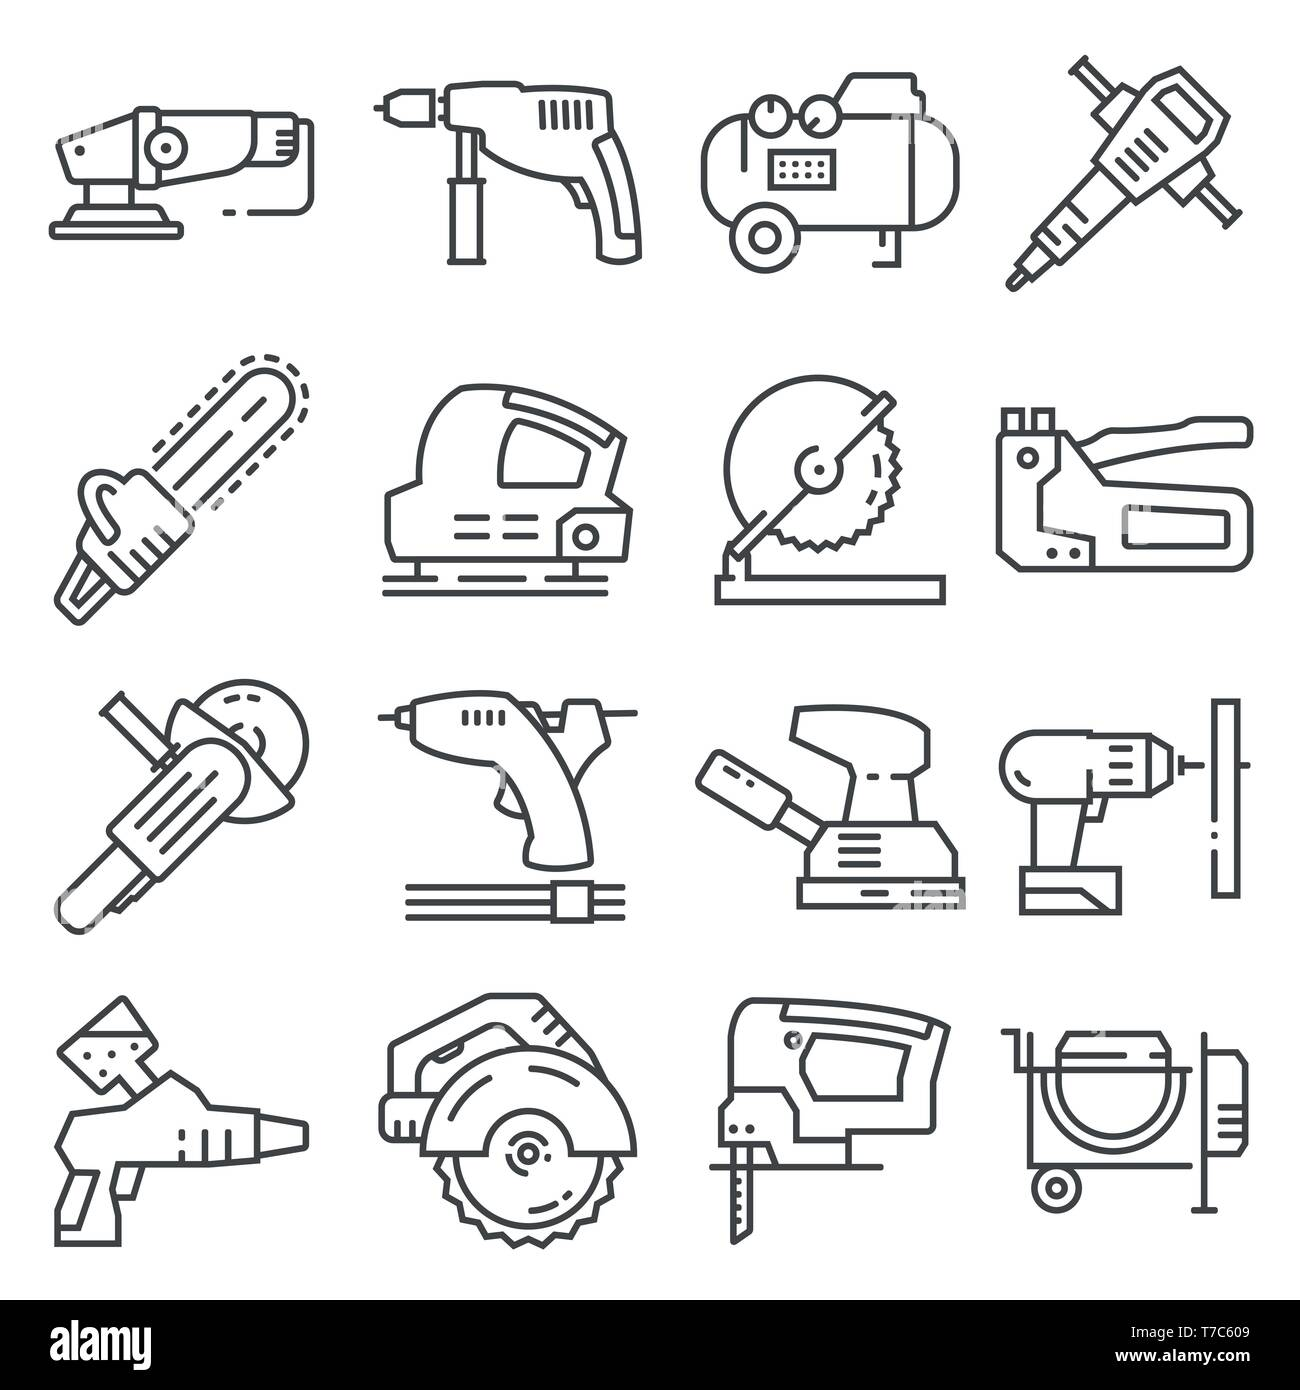 Electrical work tools vector icons for web design isolated on white background - Stock Vector